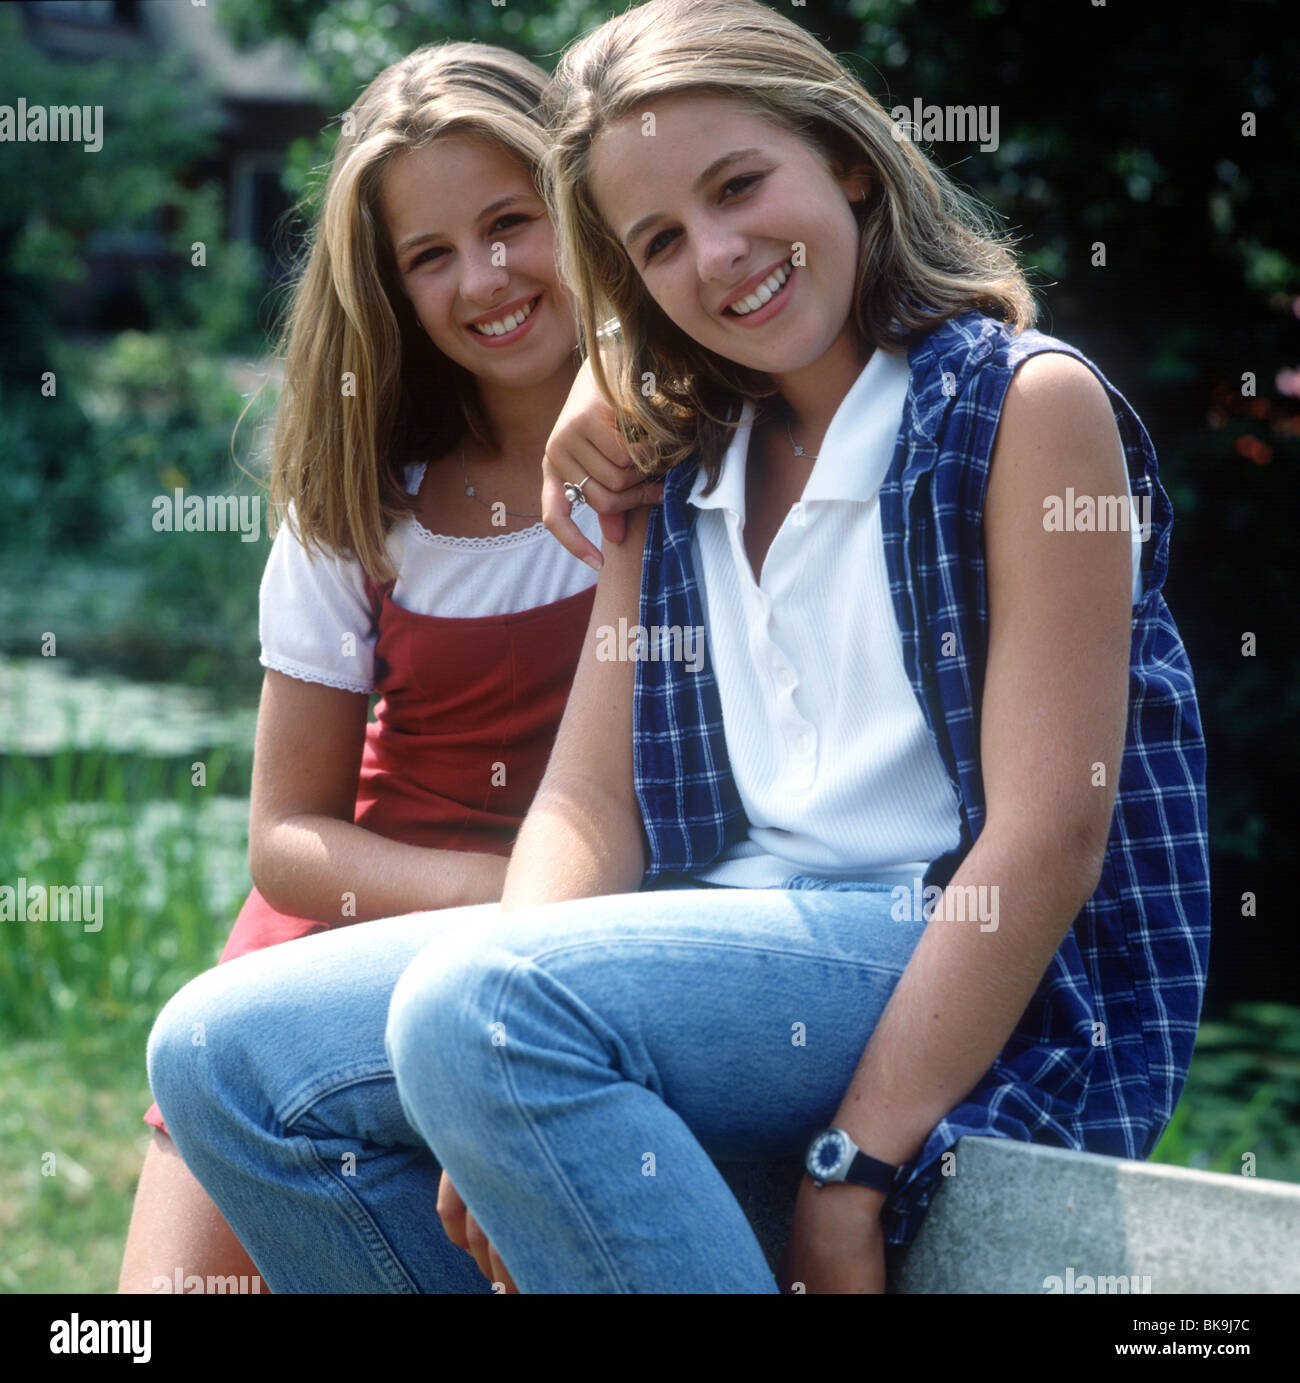 images of identical twins nude teens